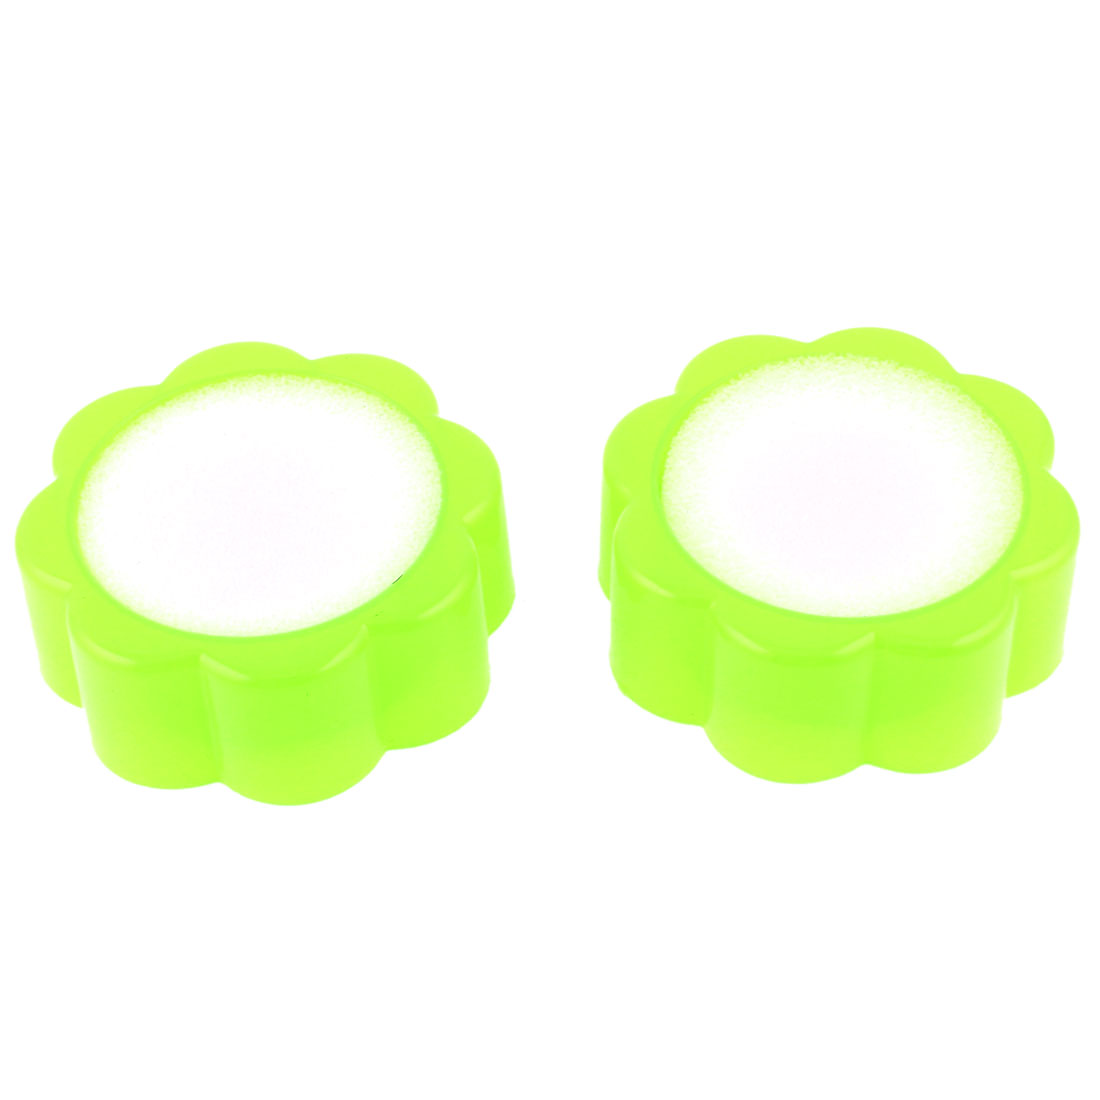 Plastic Housing Flower Shaped Finger Wet Device Light Green 2 Pcs